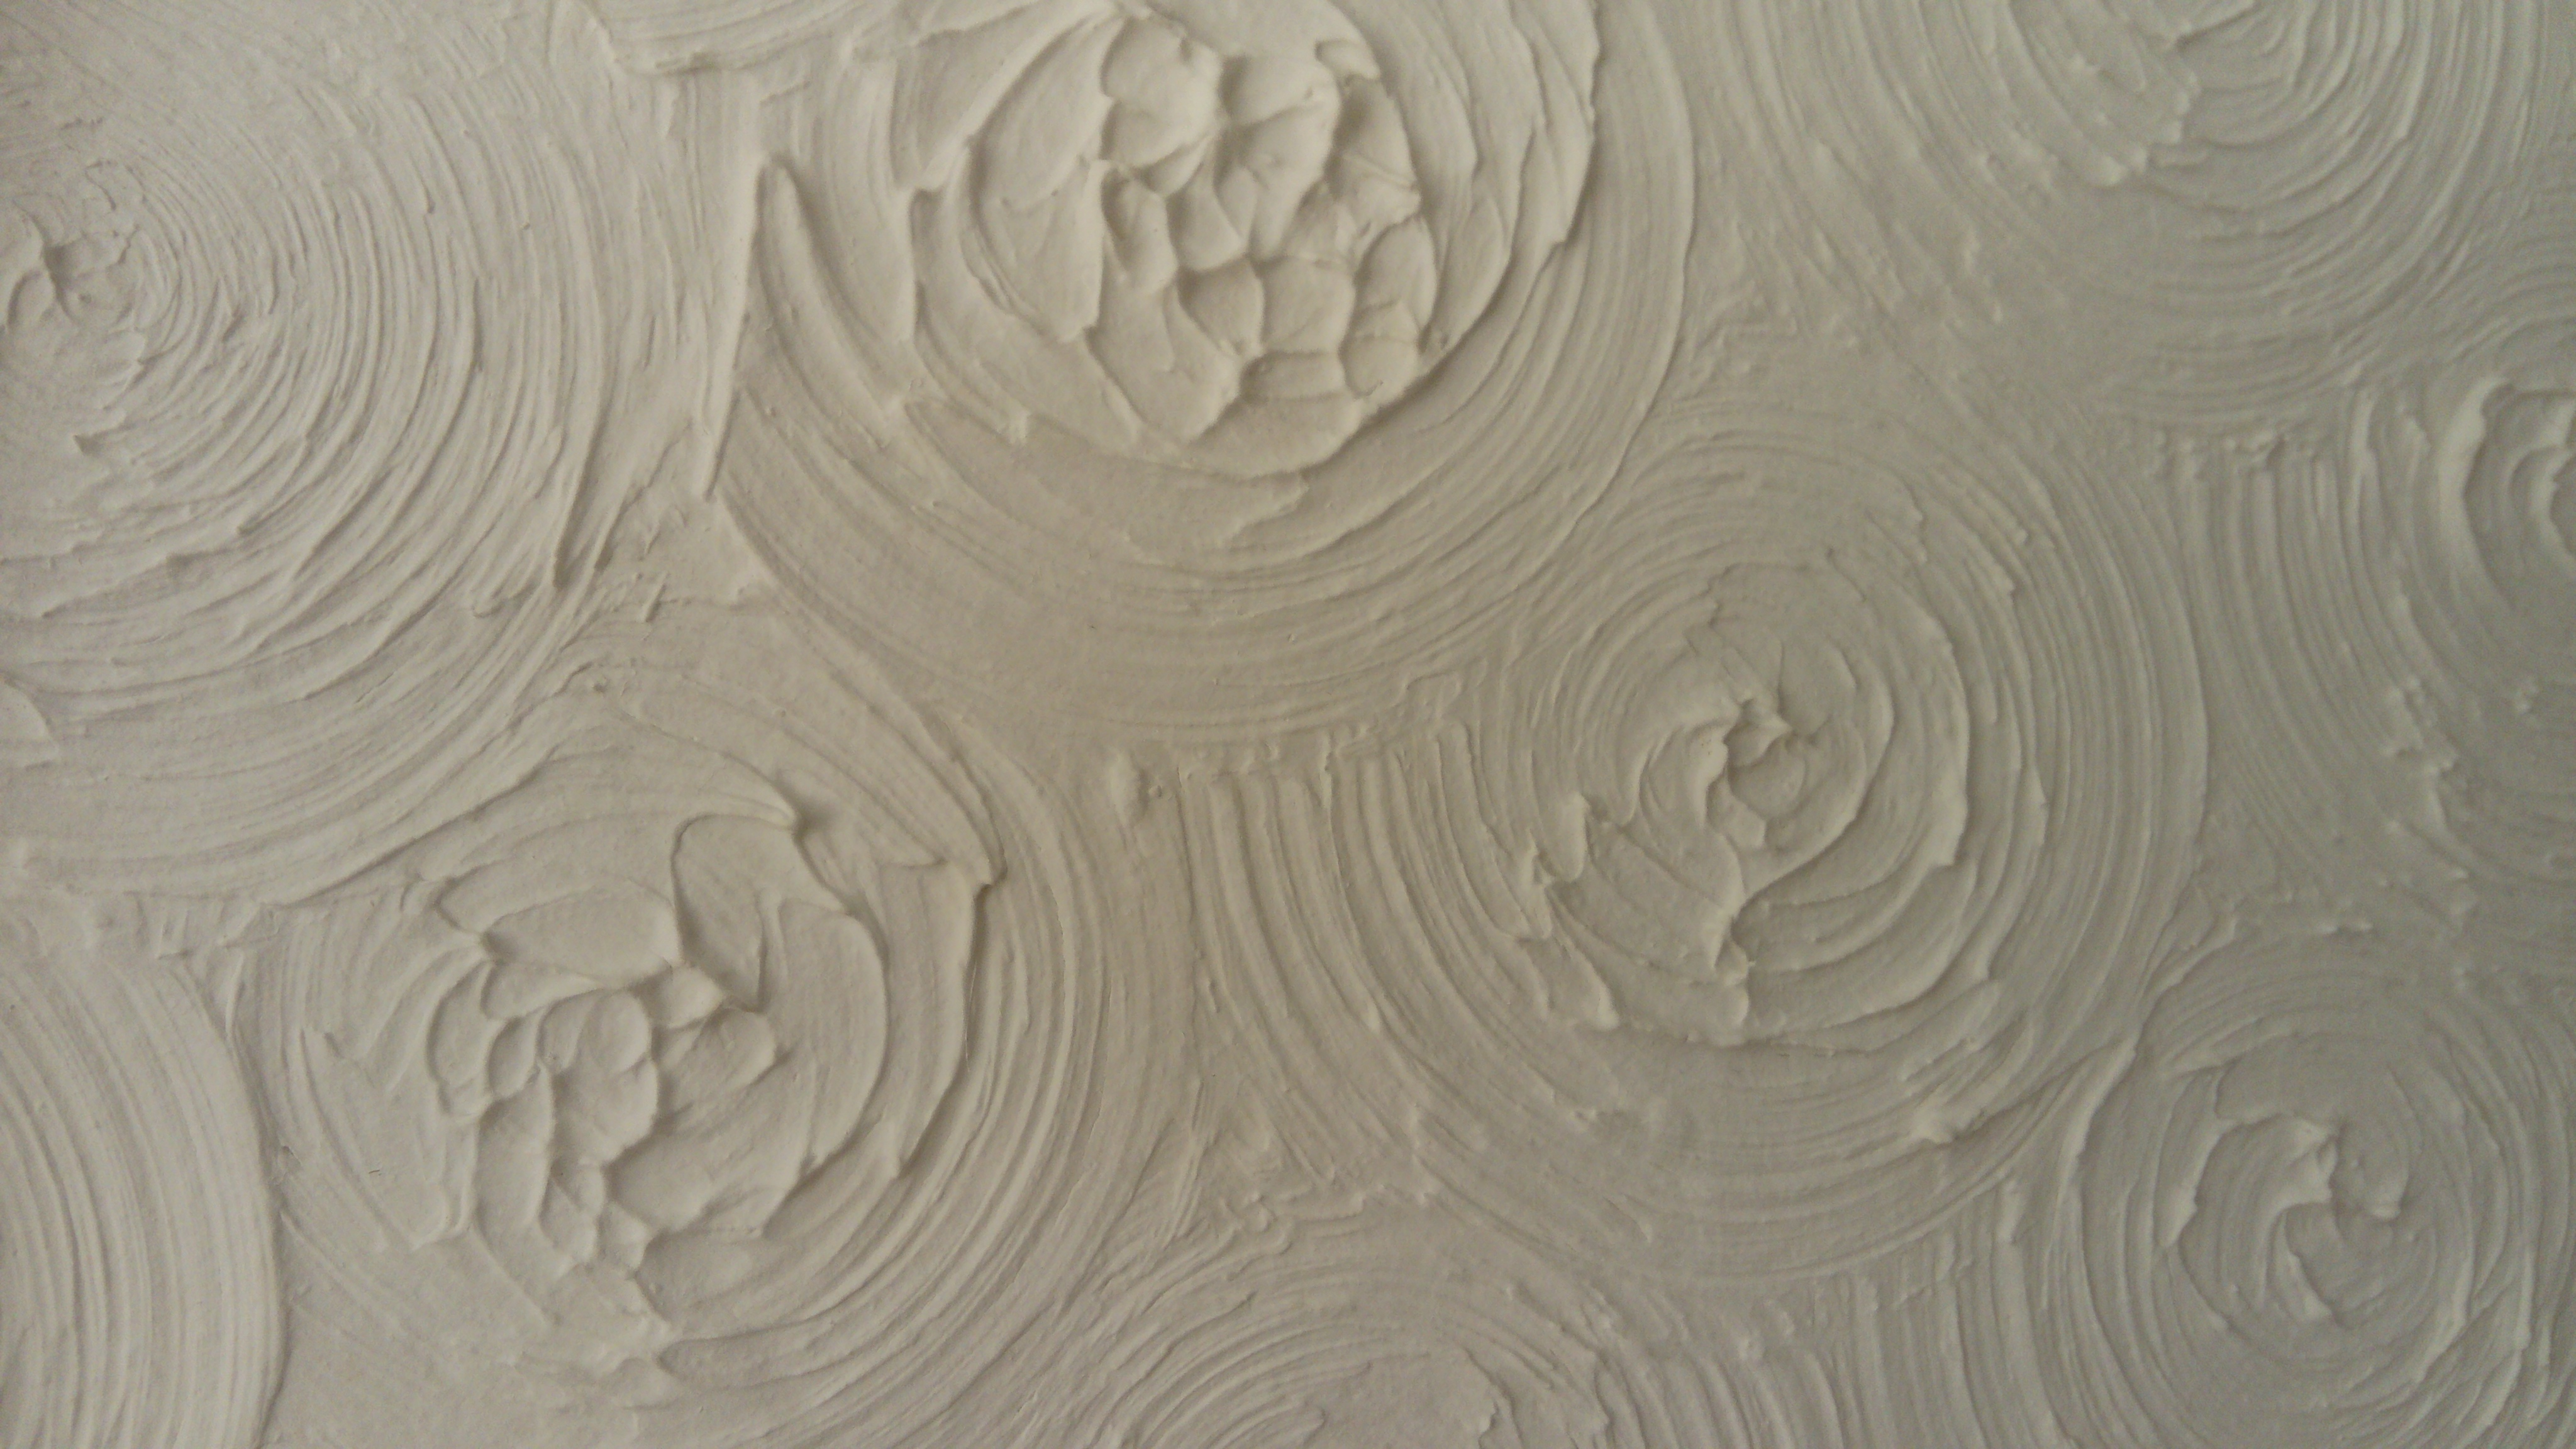 Artex – does the artex in your home contain asbestos?